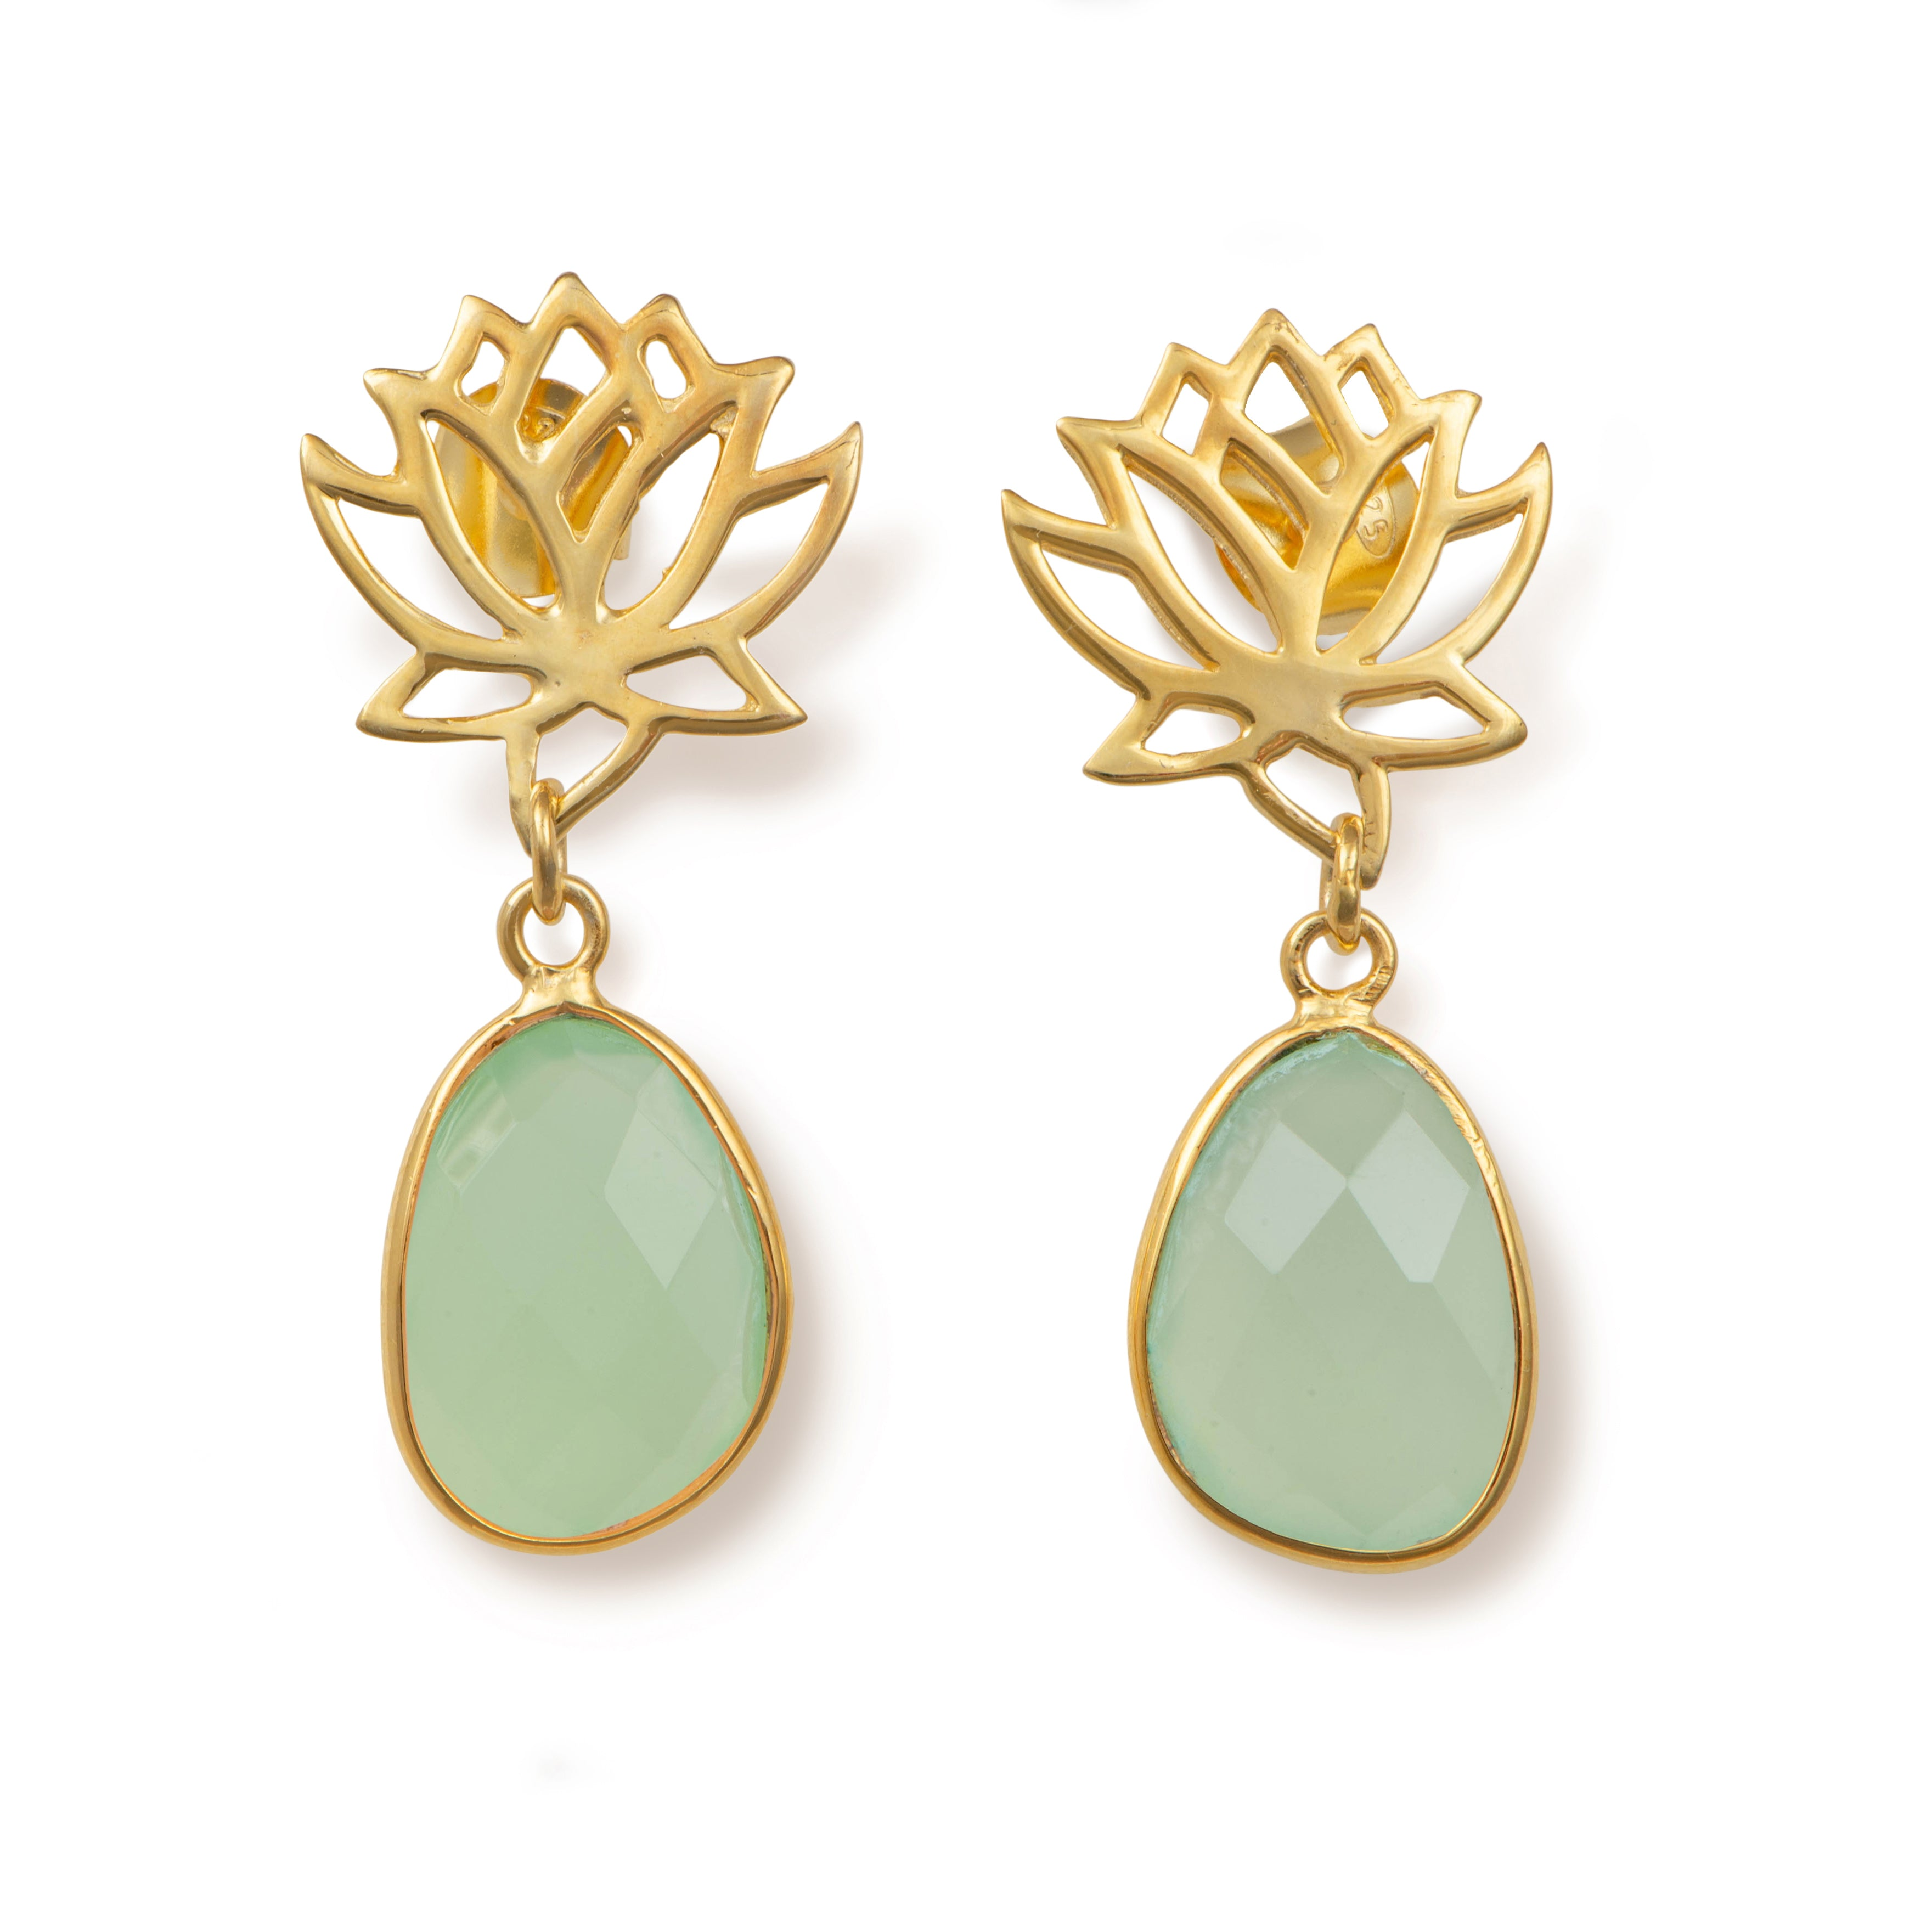 Lotus Earrings in Gold Plated Sterling Silver with a Green Chalcedony Gemstone Drop